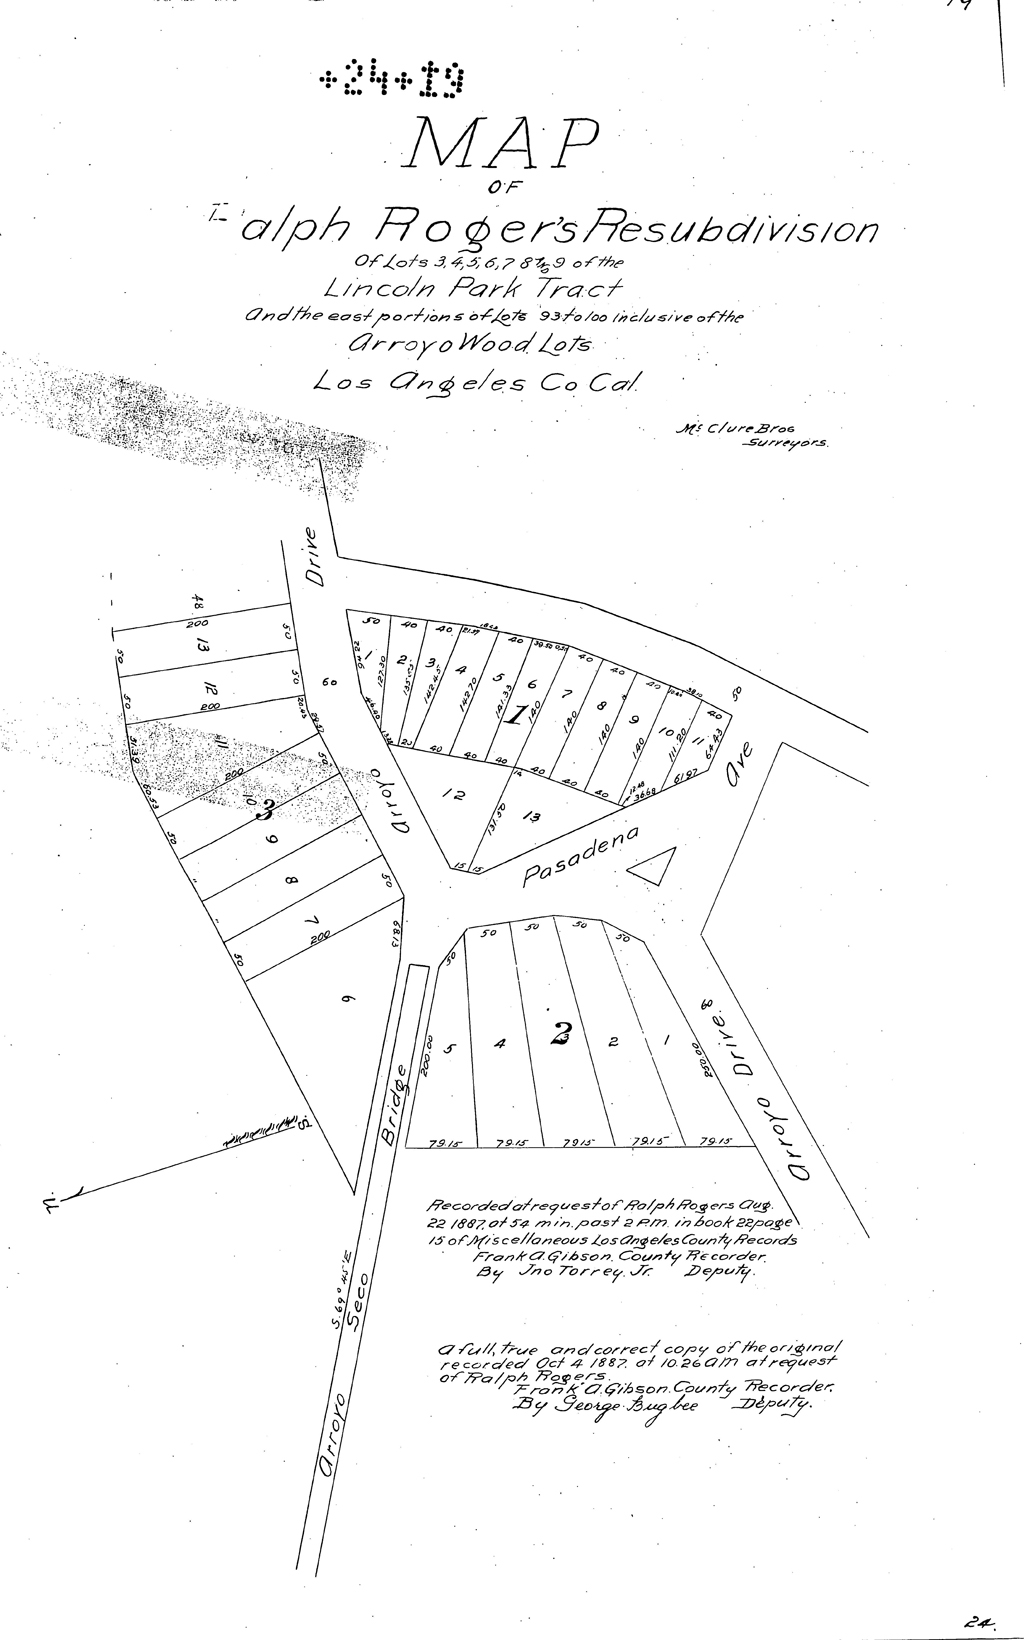 Map of Ralph Roger's [sic] Resubdivision of Lots 3, 4, 5, 6, 7, 8 and 9 of the Lincoln Park Tract and the east portions of Lots 93 to 100 inclusive of the Arroyo Wood Lots, Los Angeles Co. Cal. (22 August 1887).